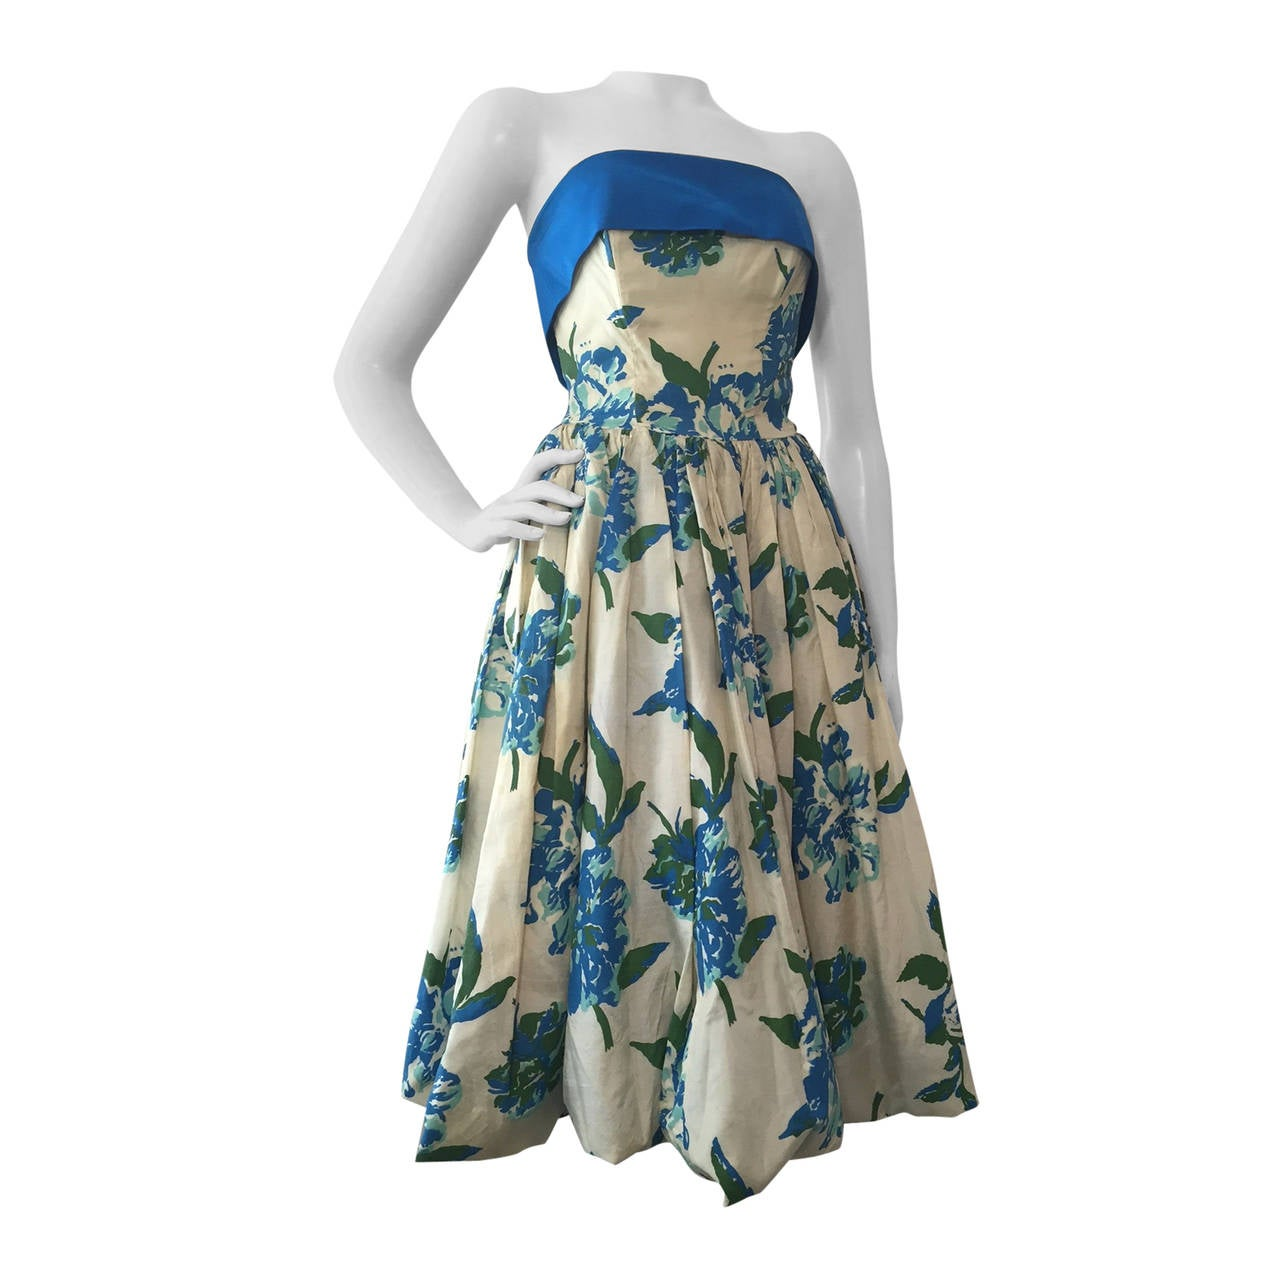 1950s Silk Floral Print Strapless Summer Dress in White, Blue and Green